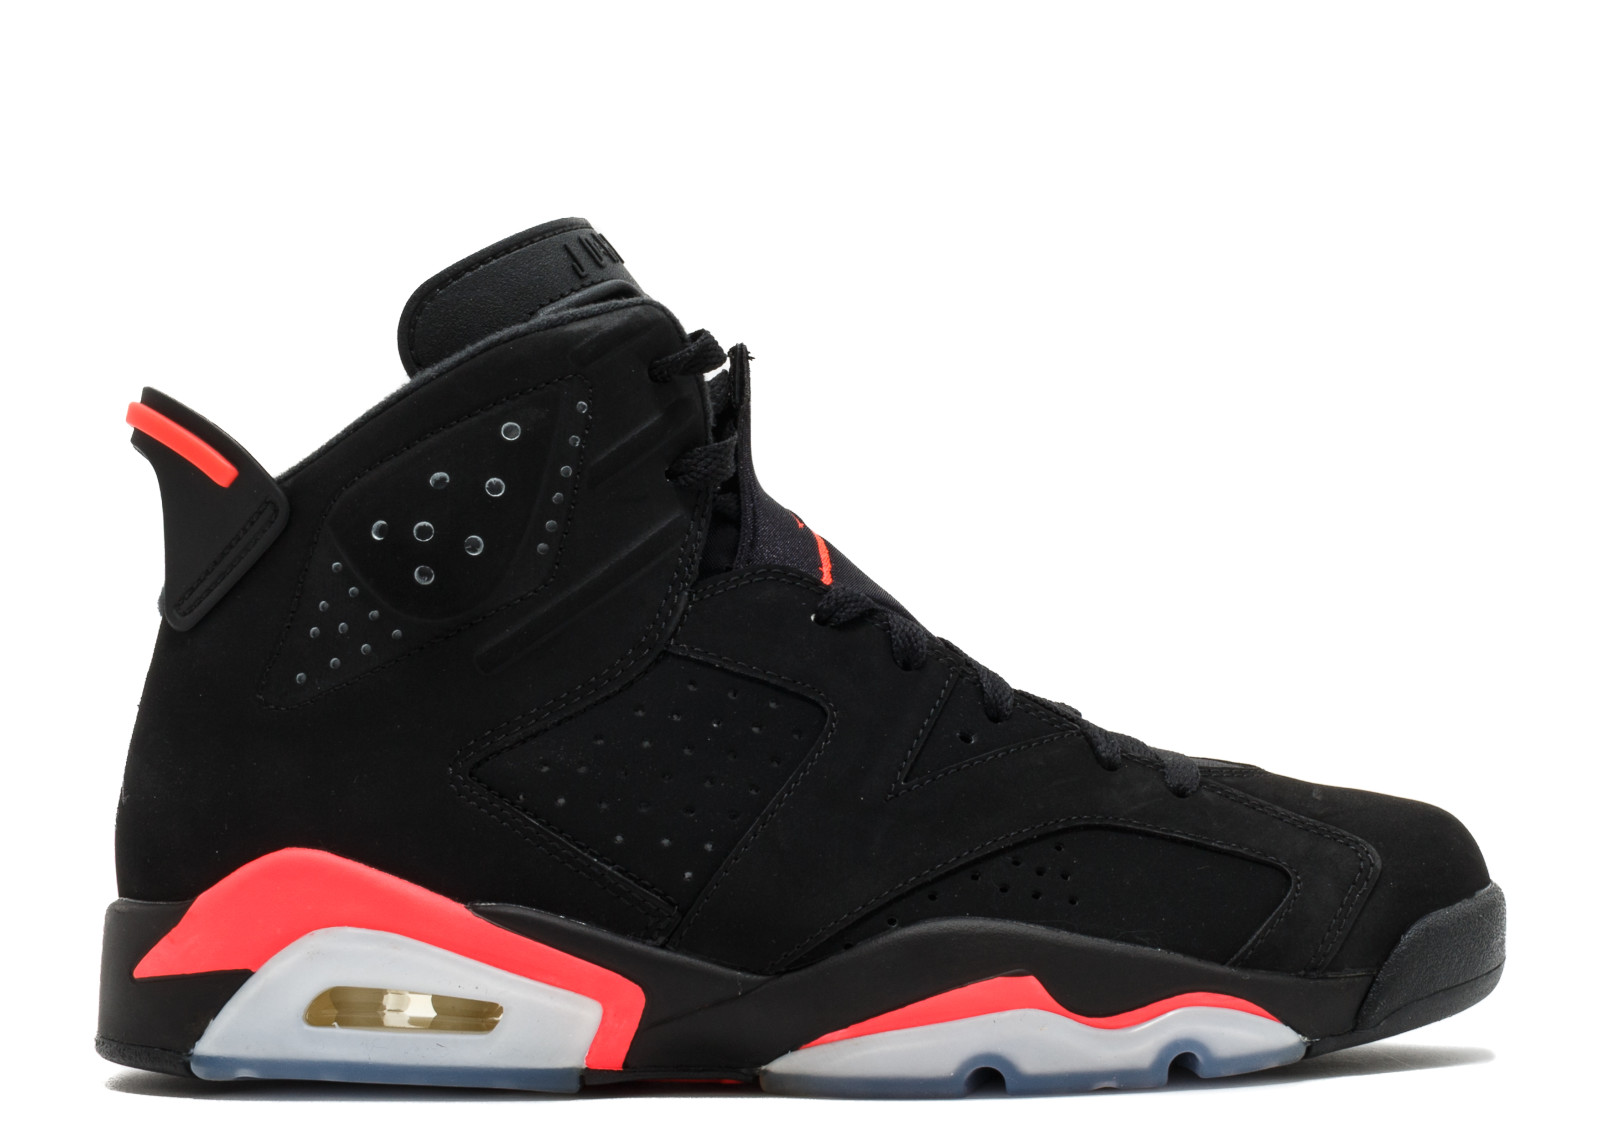 Jordan 6 Retro Black Infared 2019